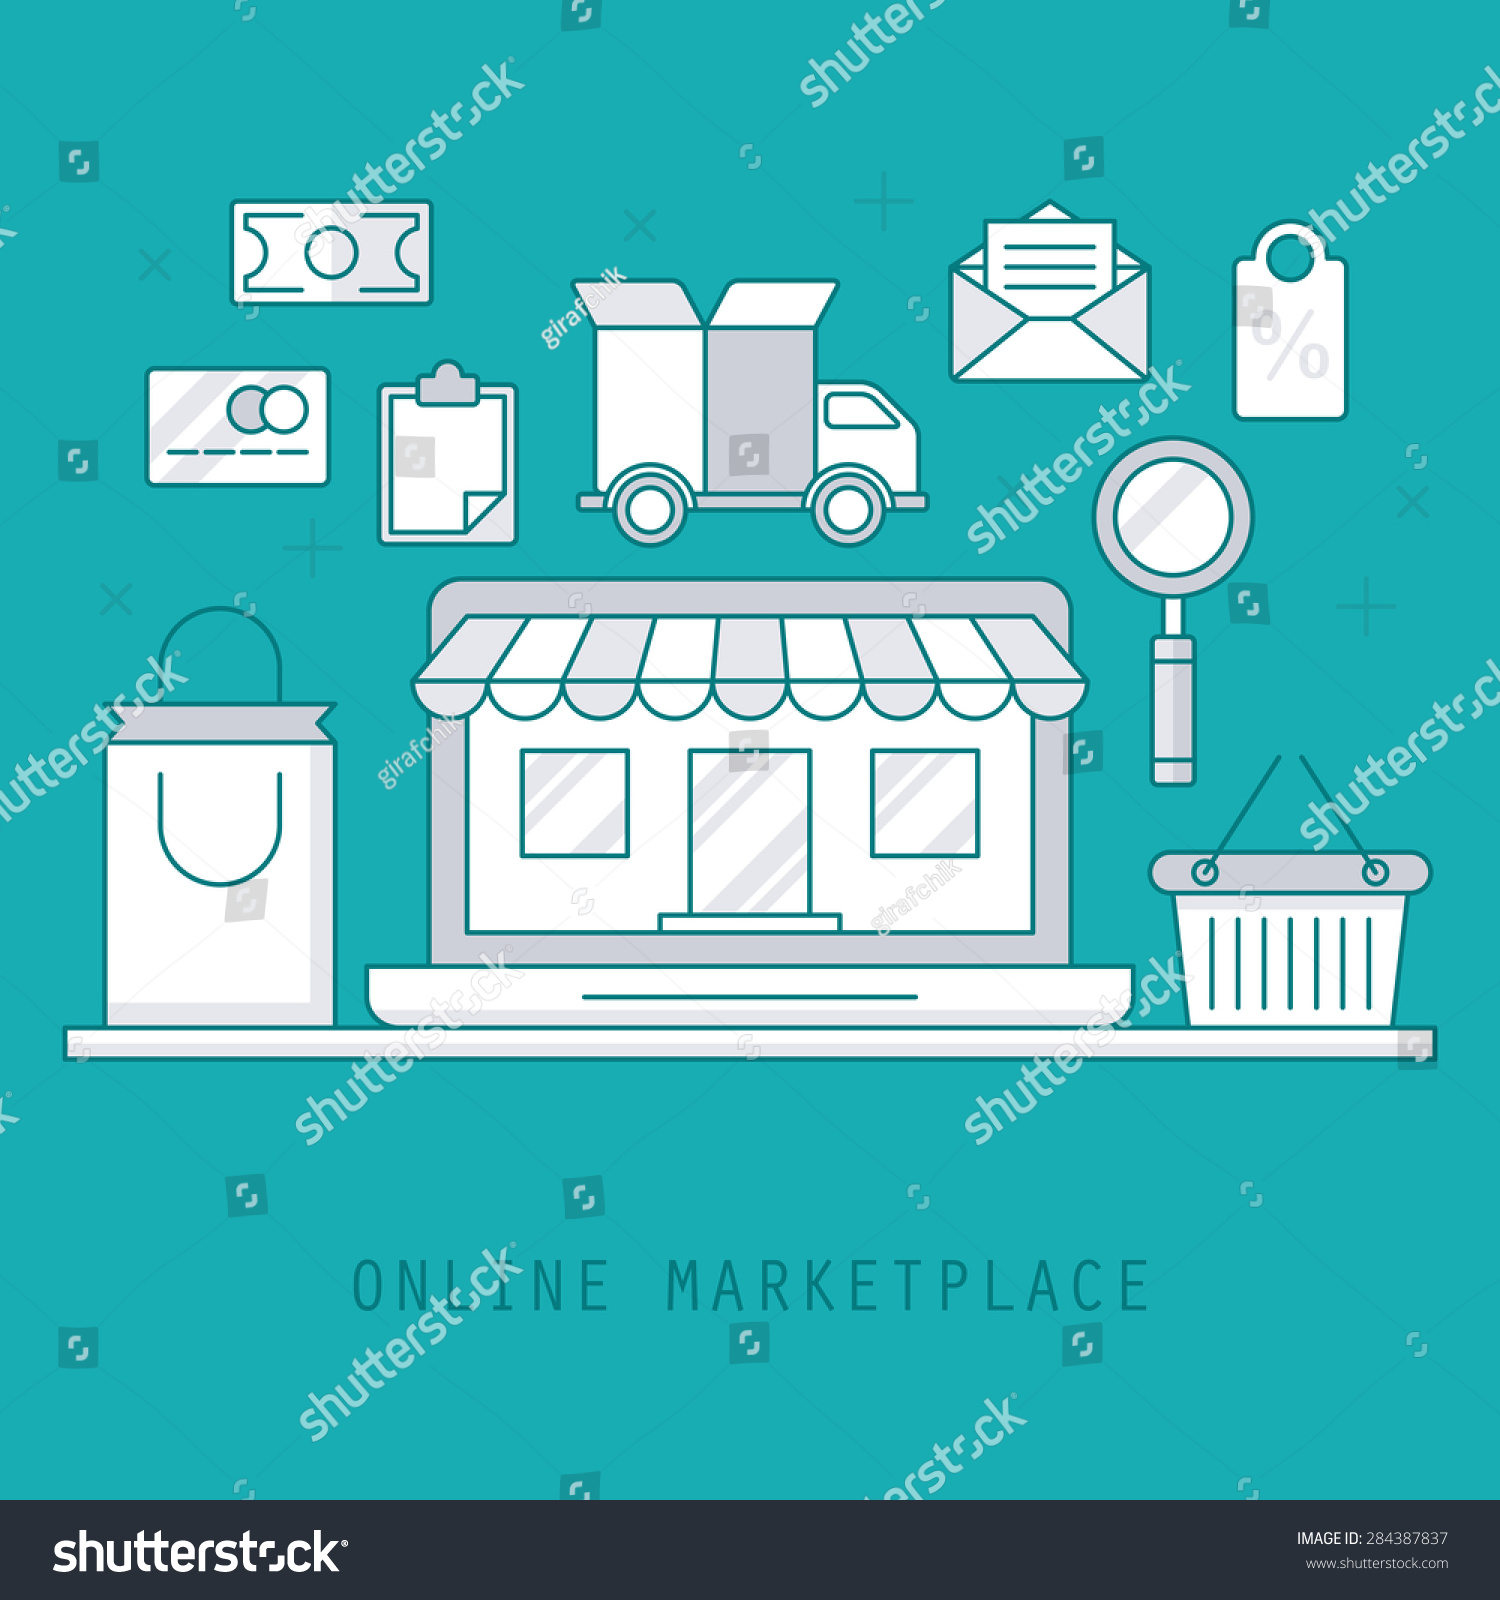 Thin Line Style Design Online Marketplace Stock Vector 284387837 ...